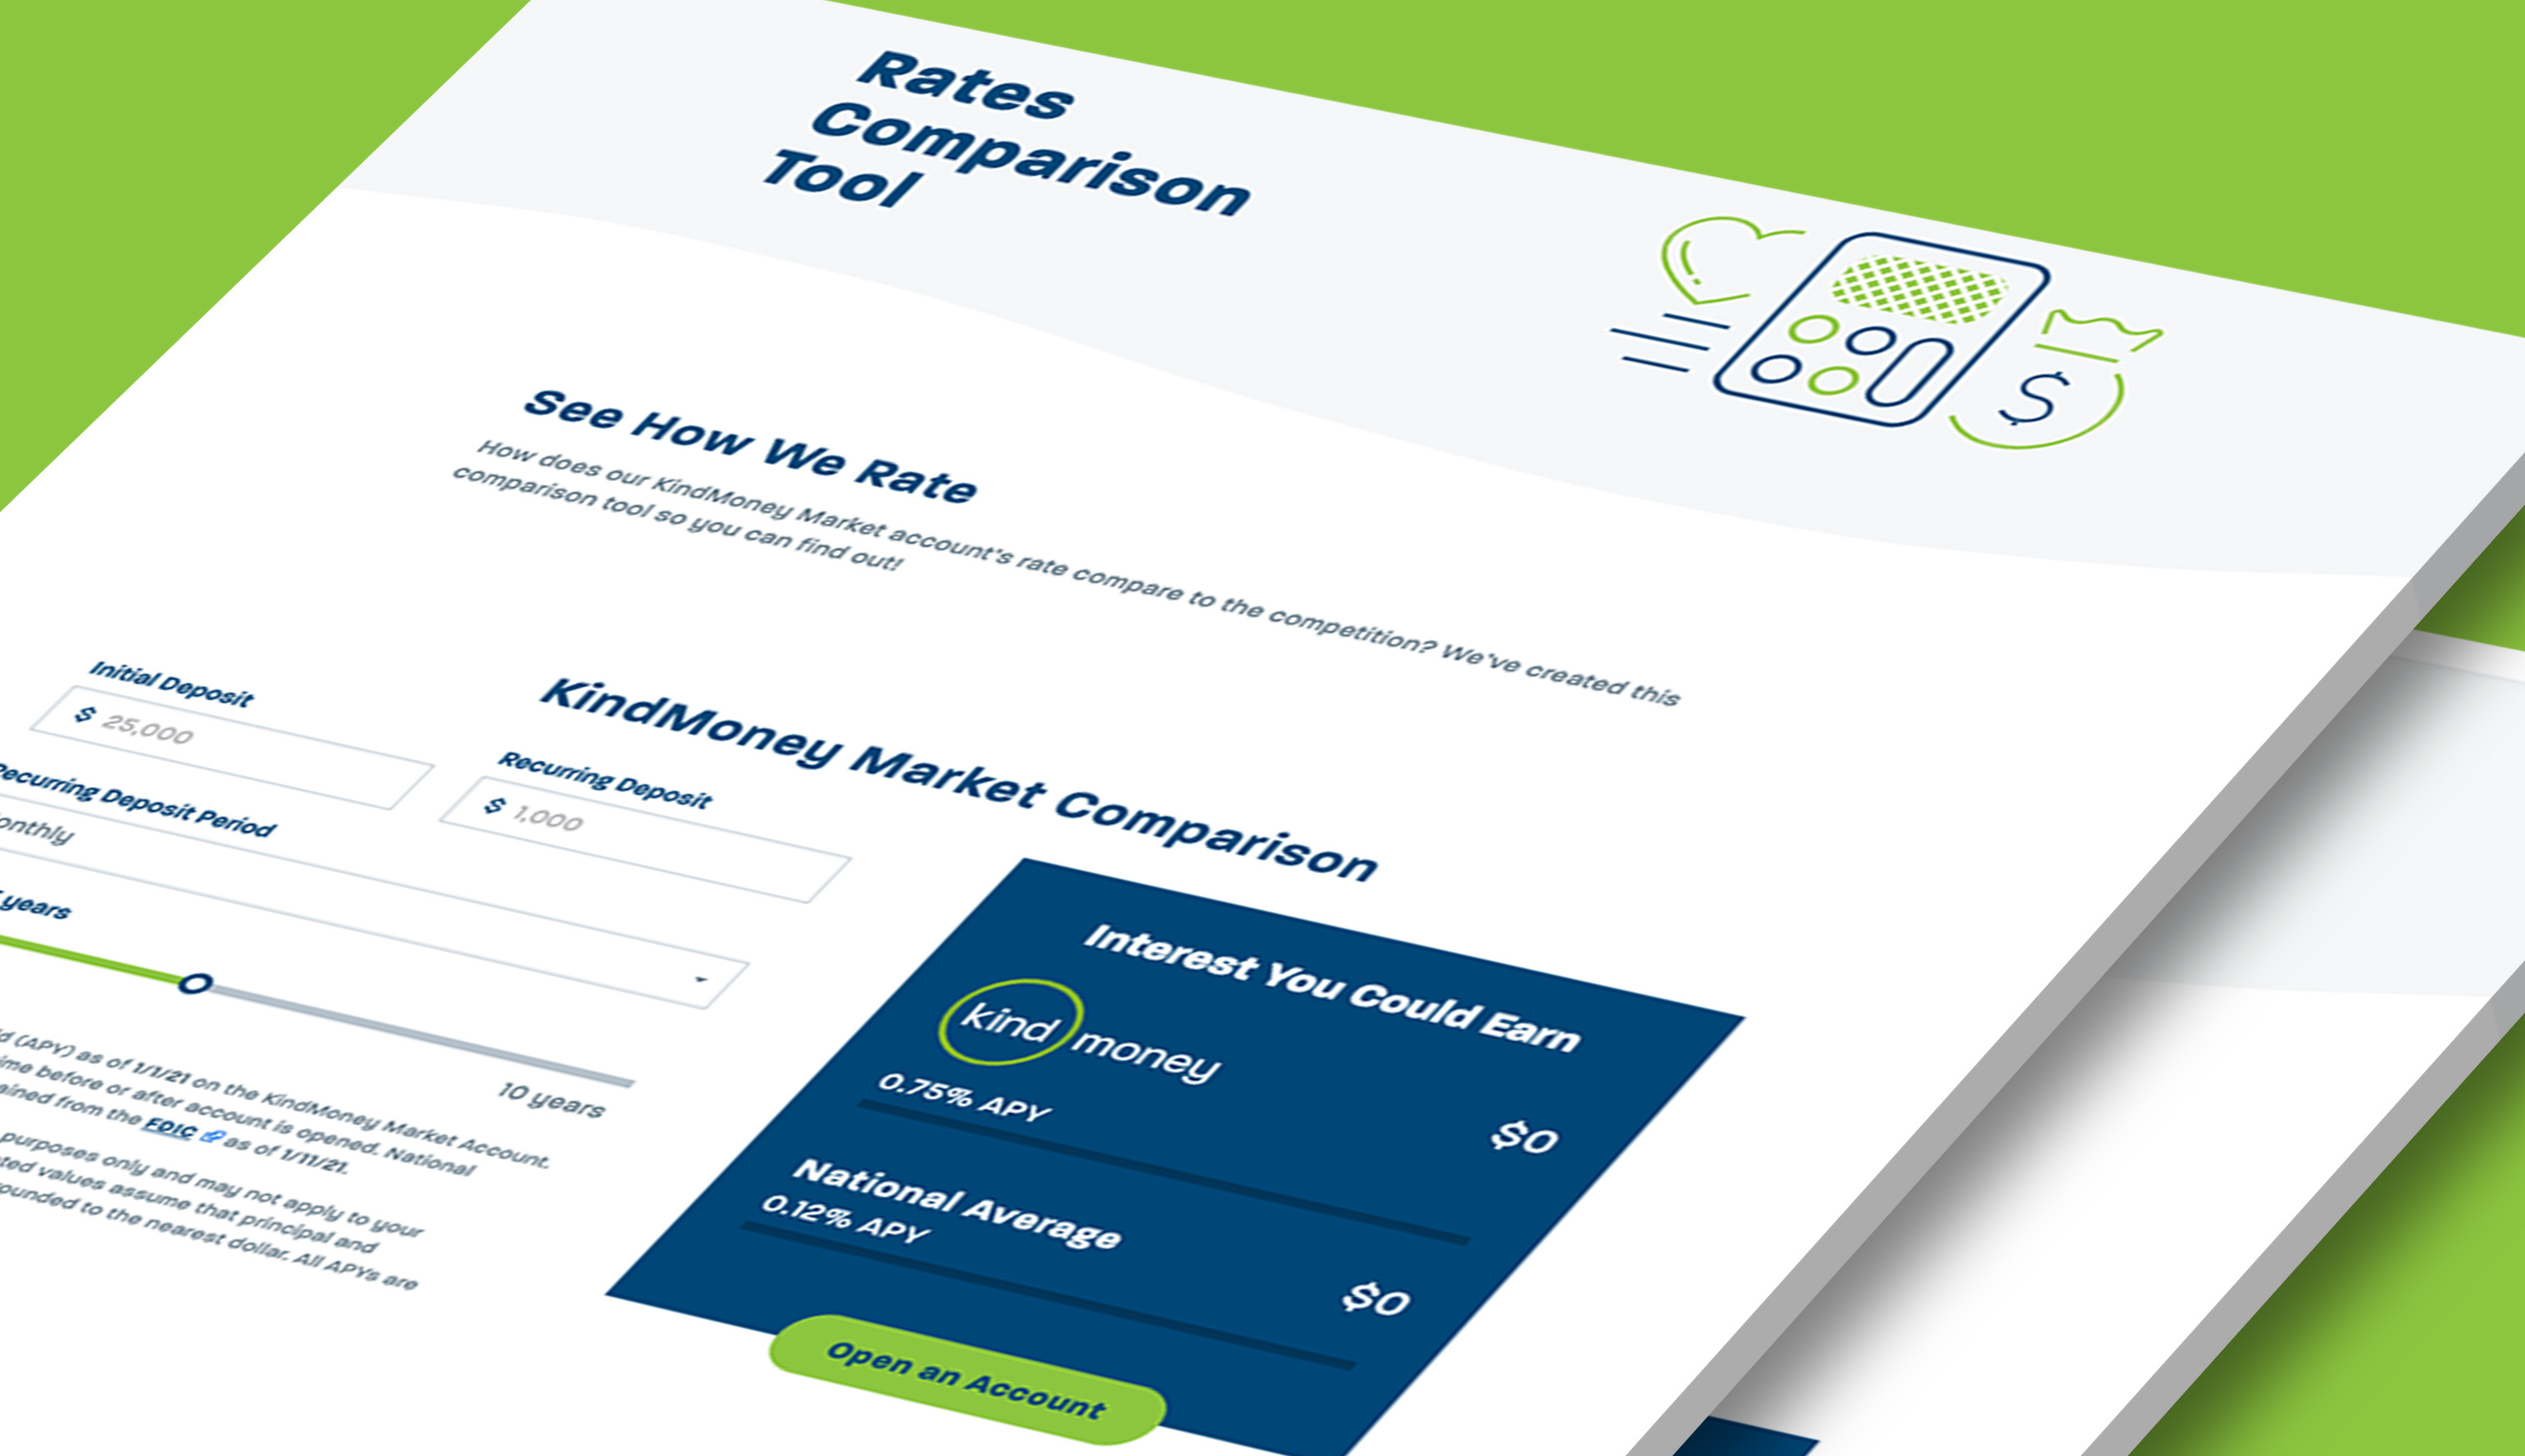 The rates-comparison tool from KindMoney's website